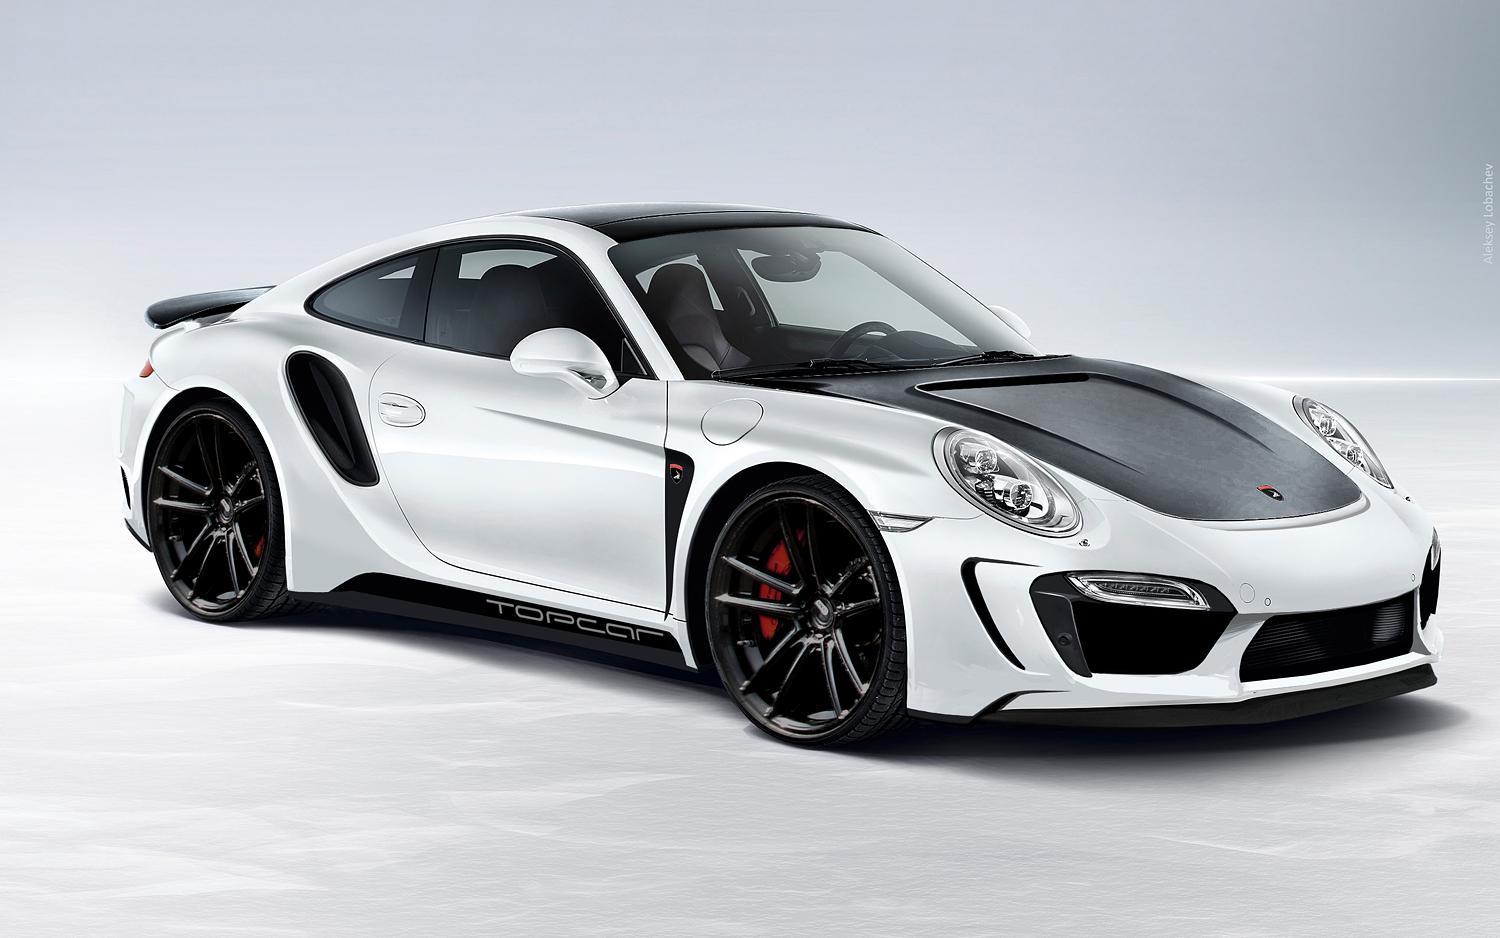 2014 Porsche 911 Turbo/Turbo S Stinger GTR By TopCar Pictures, Photos, Wallpapers.